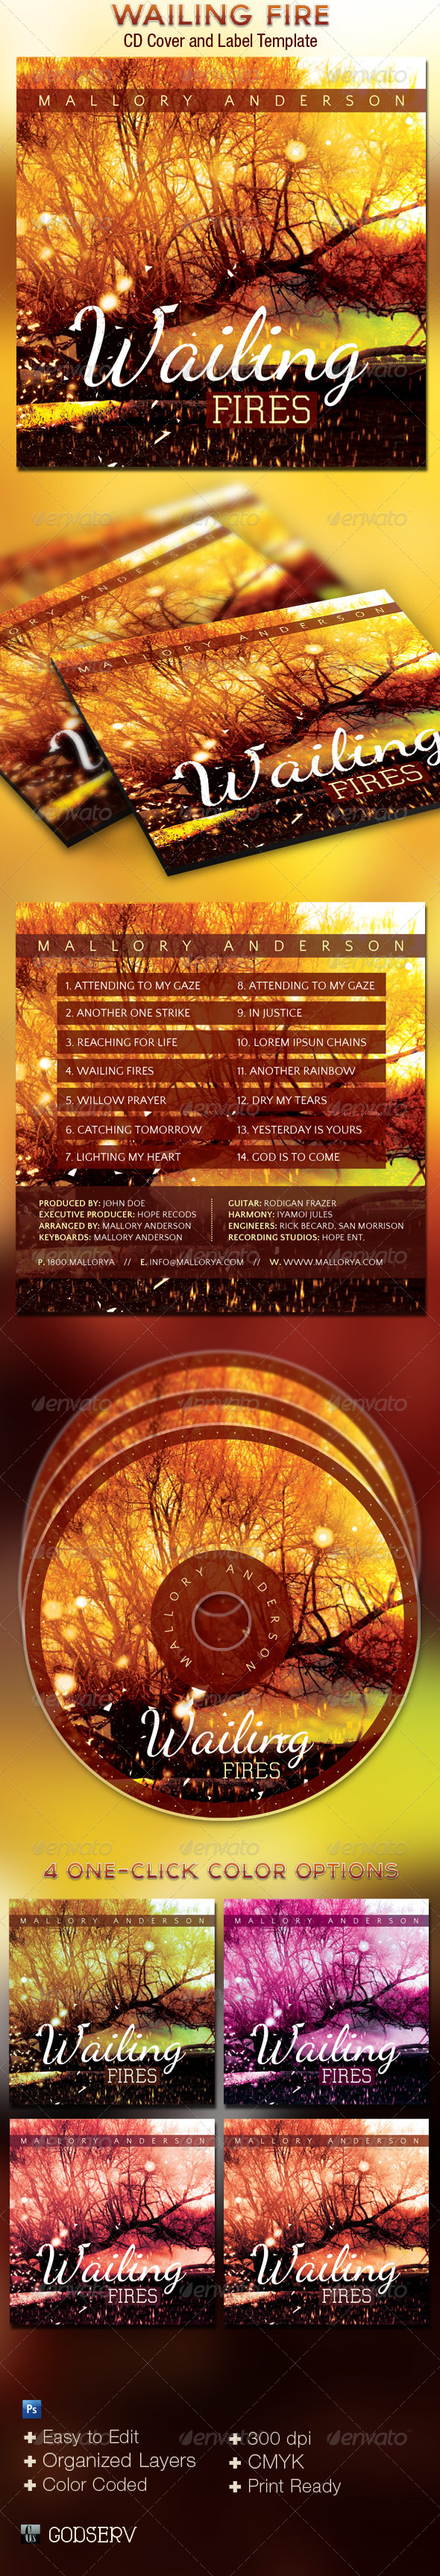 GraphicRiver Wailing Fire CD Cover Art Template 4066229